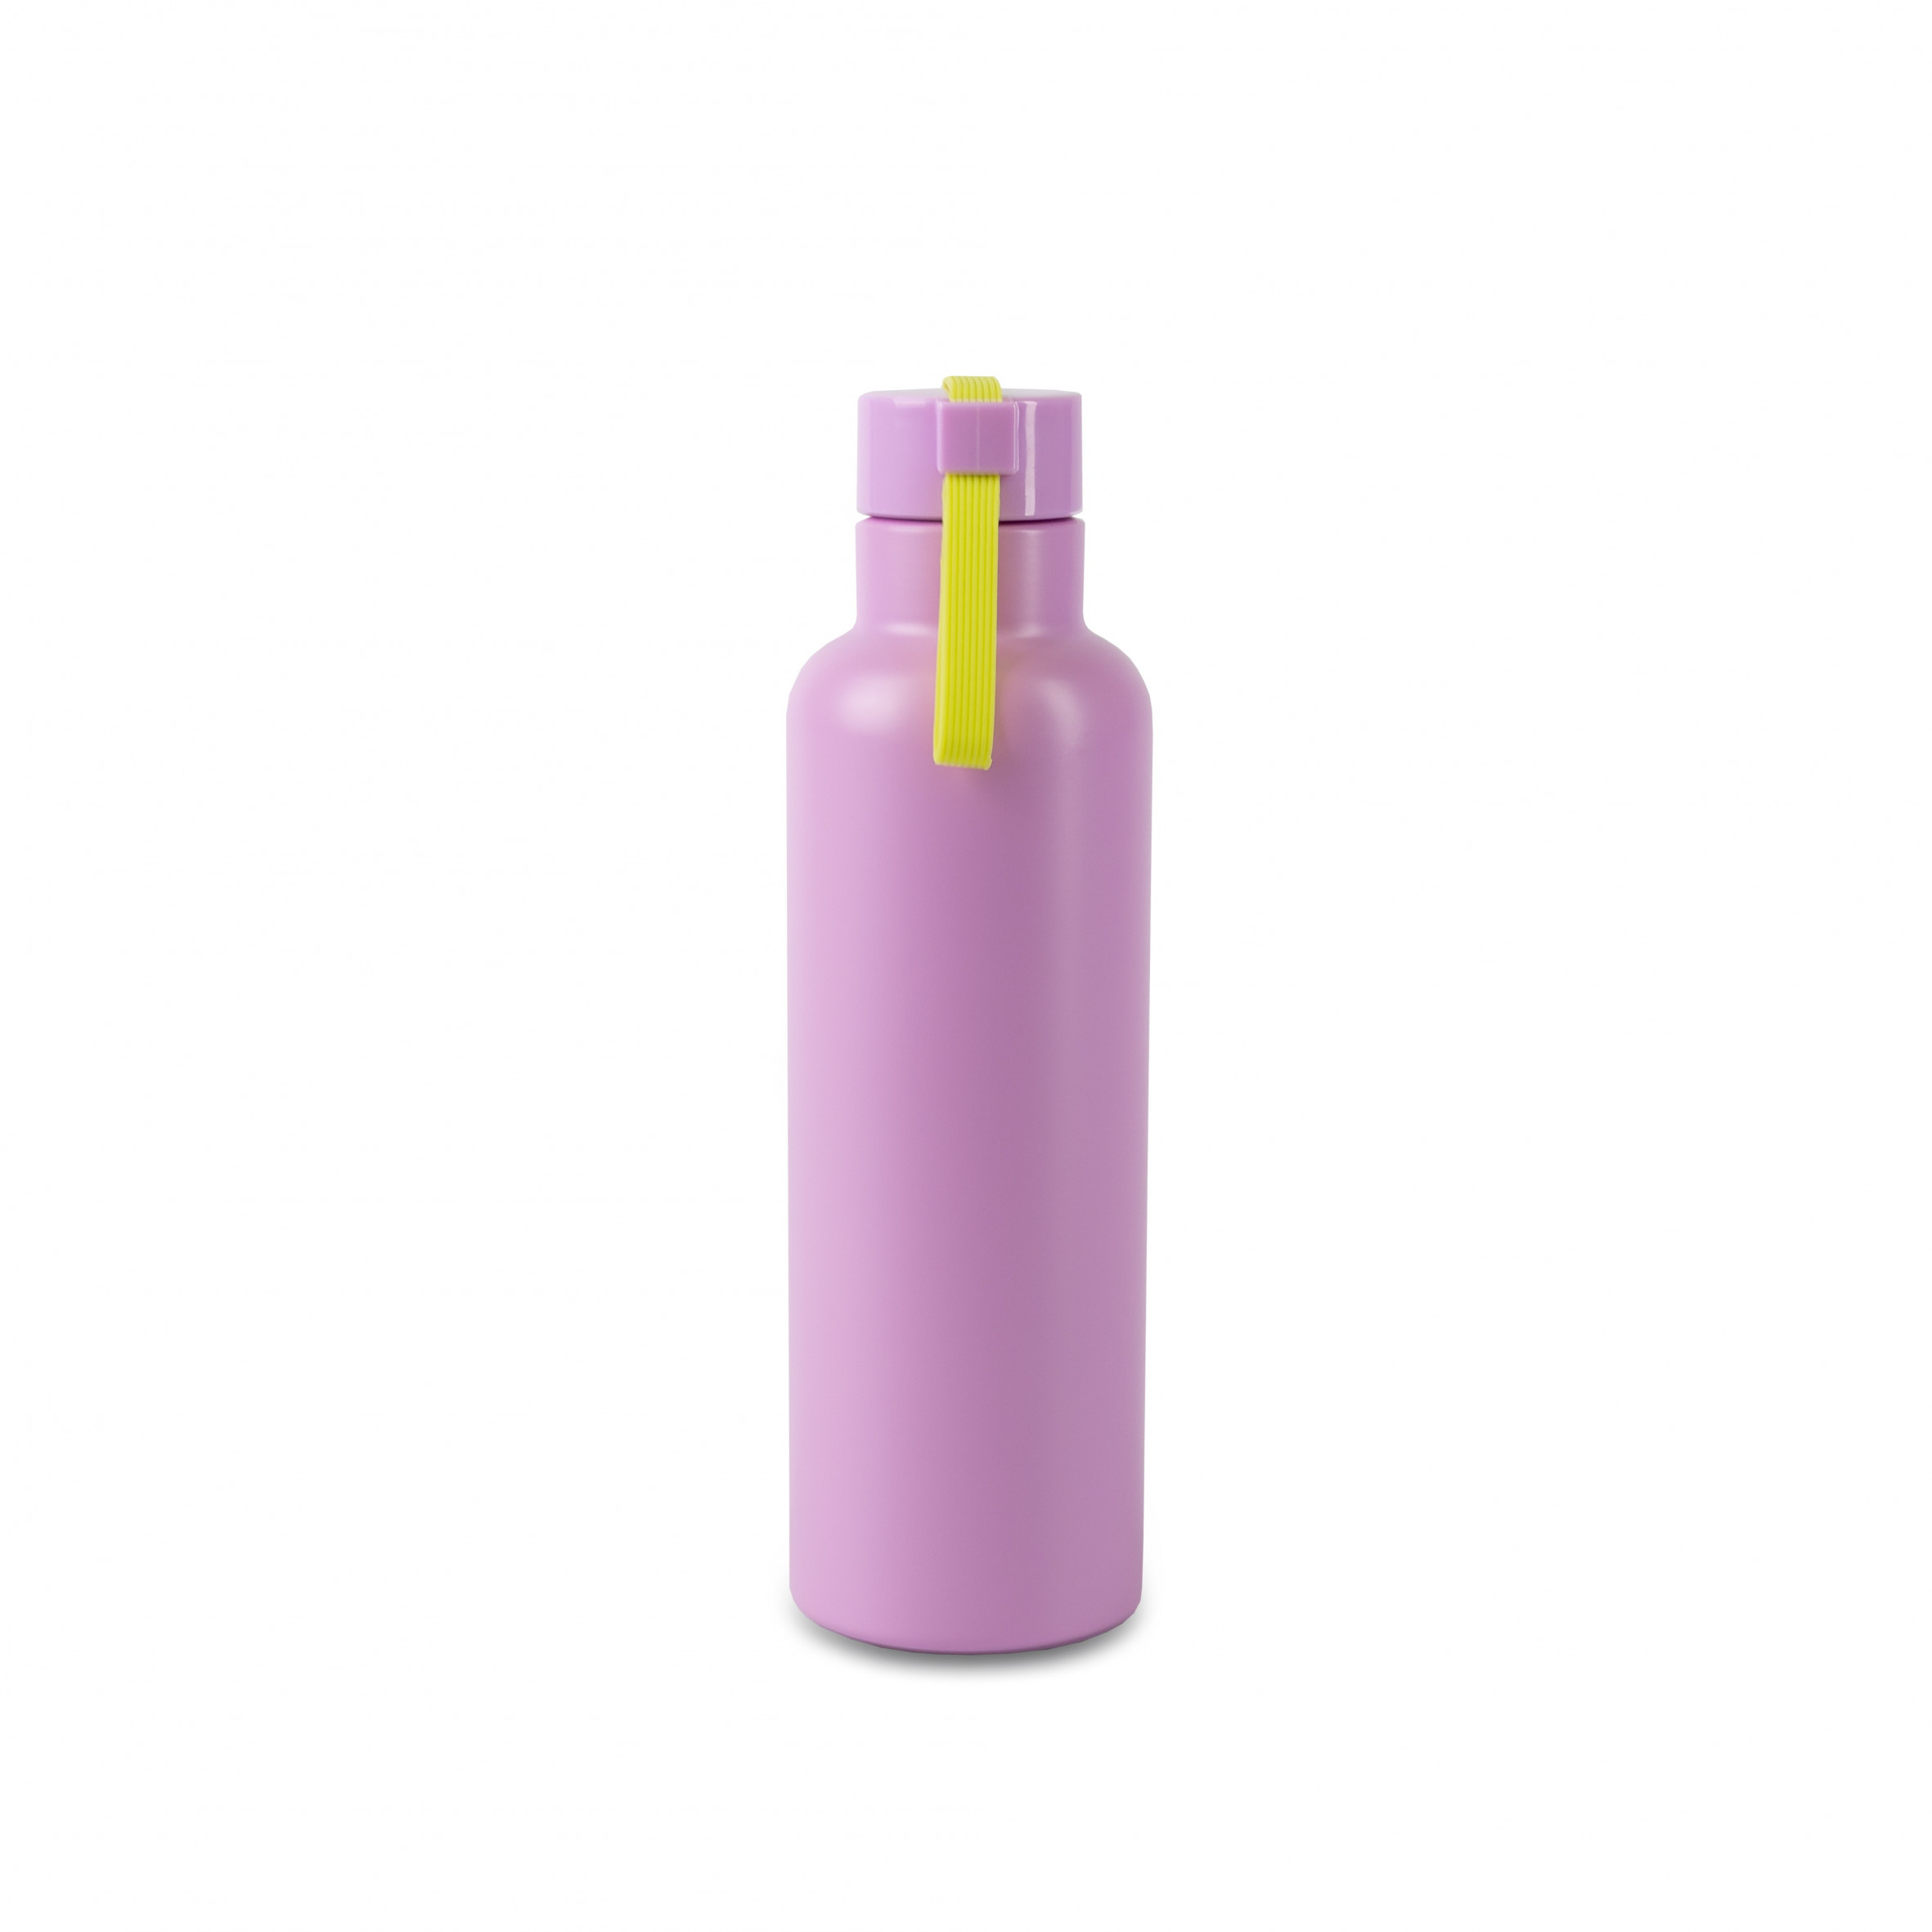 Thermal-Flasche | Rosa